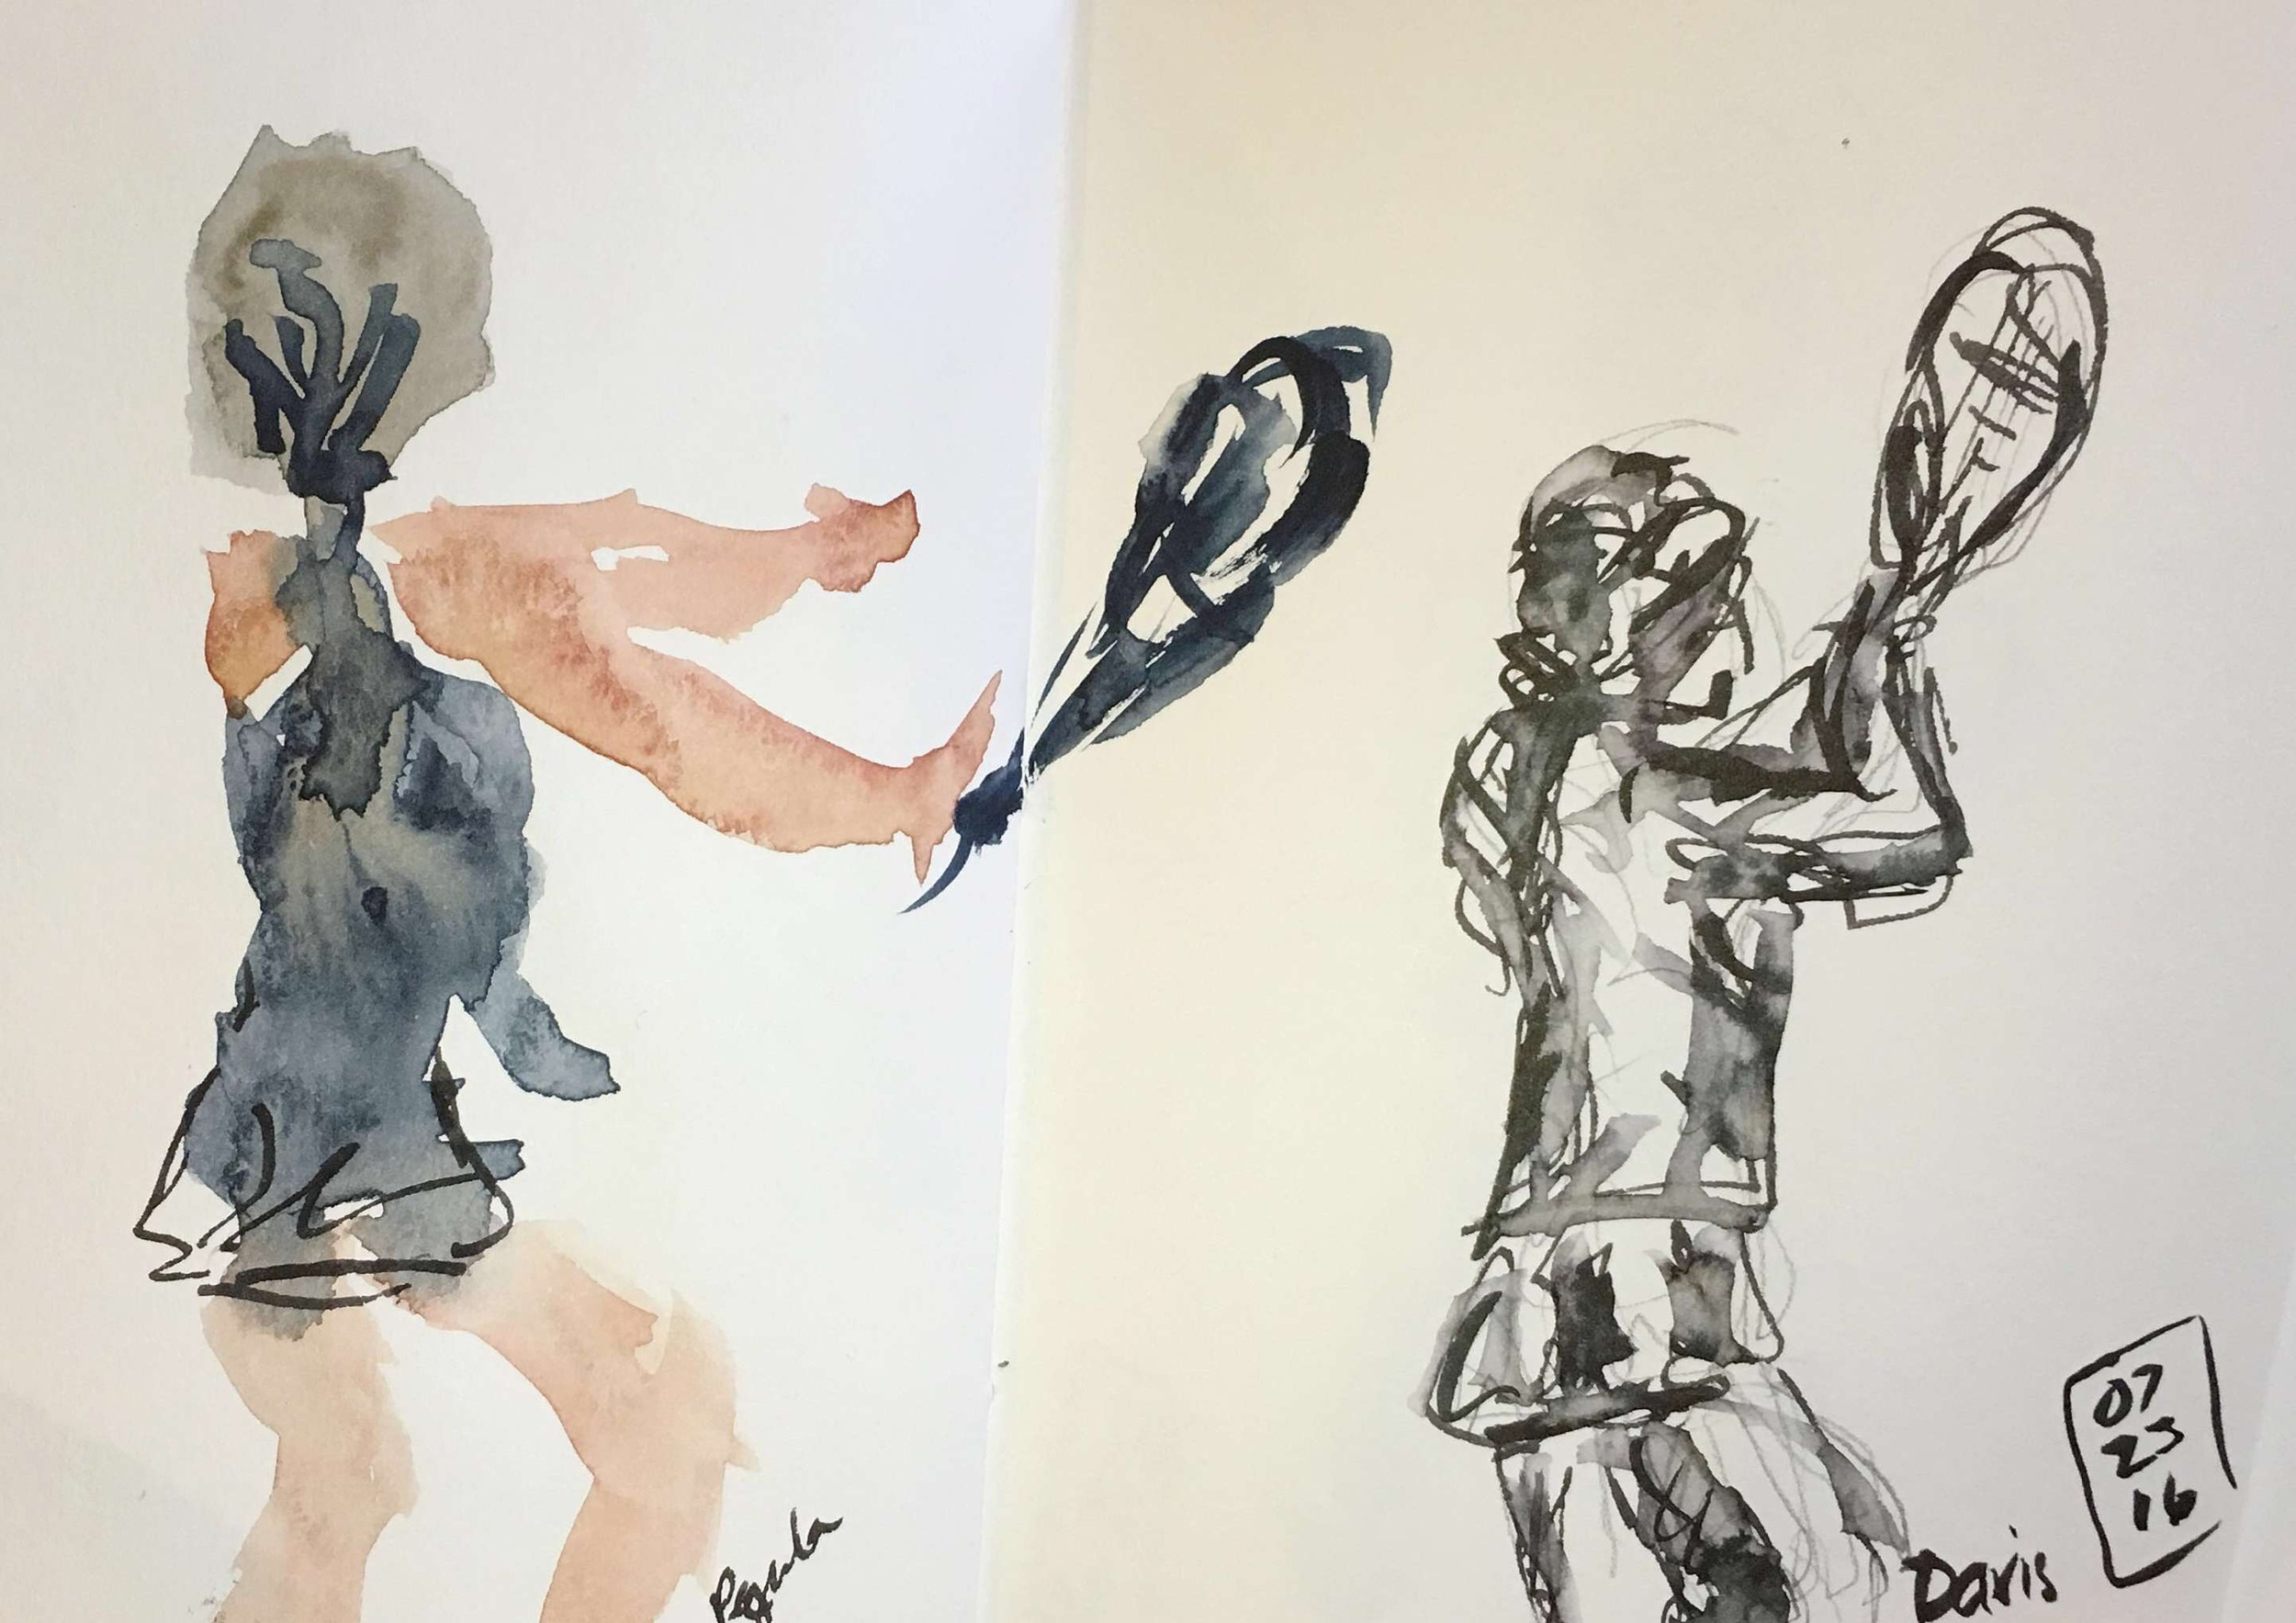 Pegula hitting a forehand in watercolor; Davis lining up a forehand in watersoluble ink